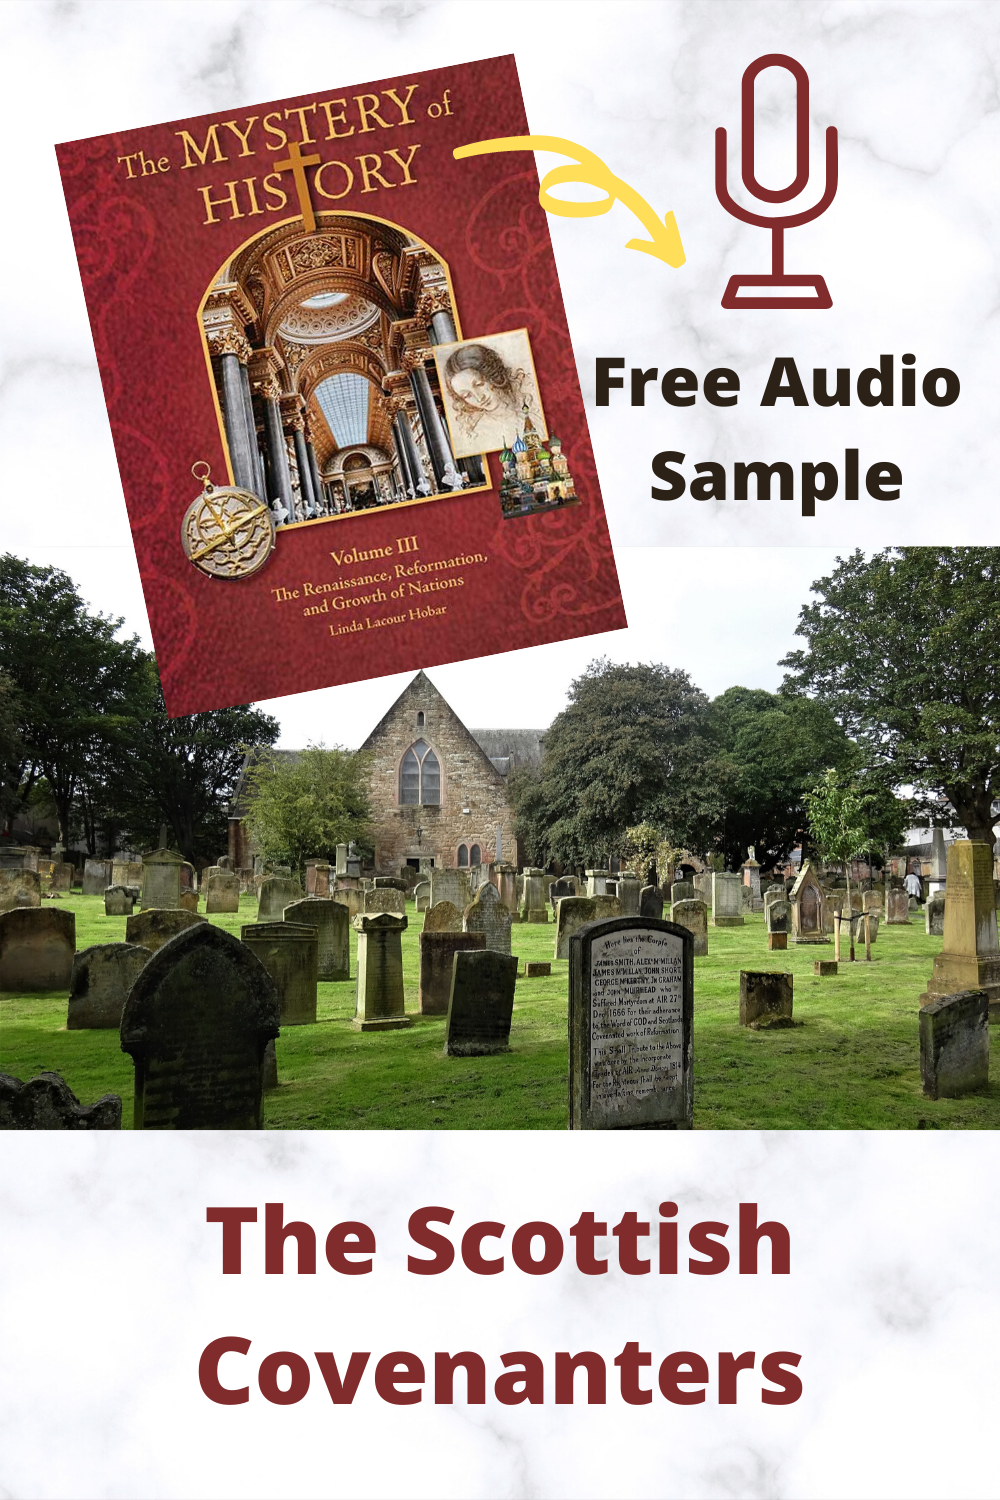 Download a free sample of the audio narrative of The Scottish Covenanters from The Mystery Of History Volume III